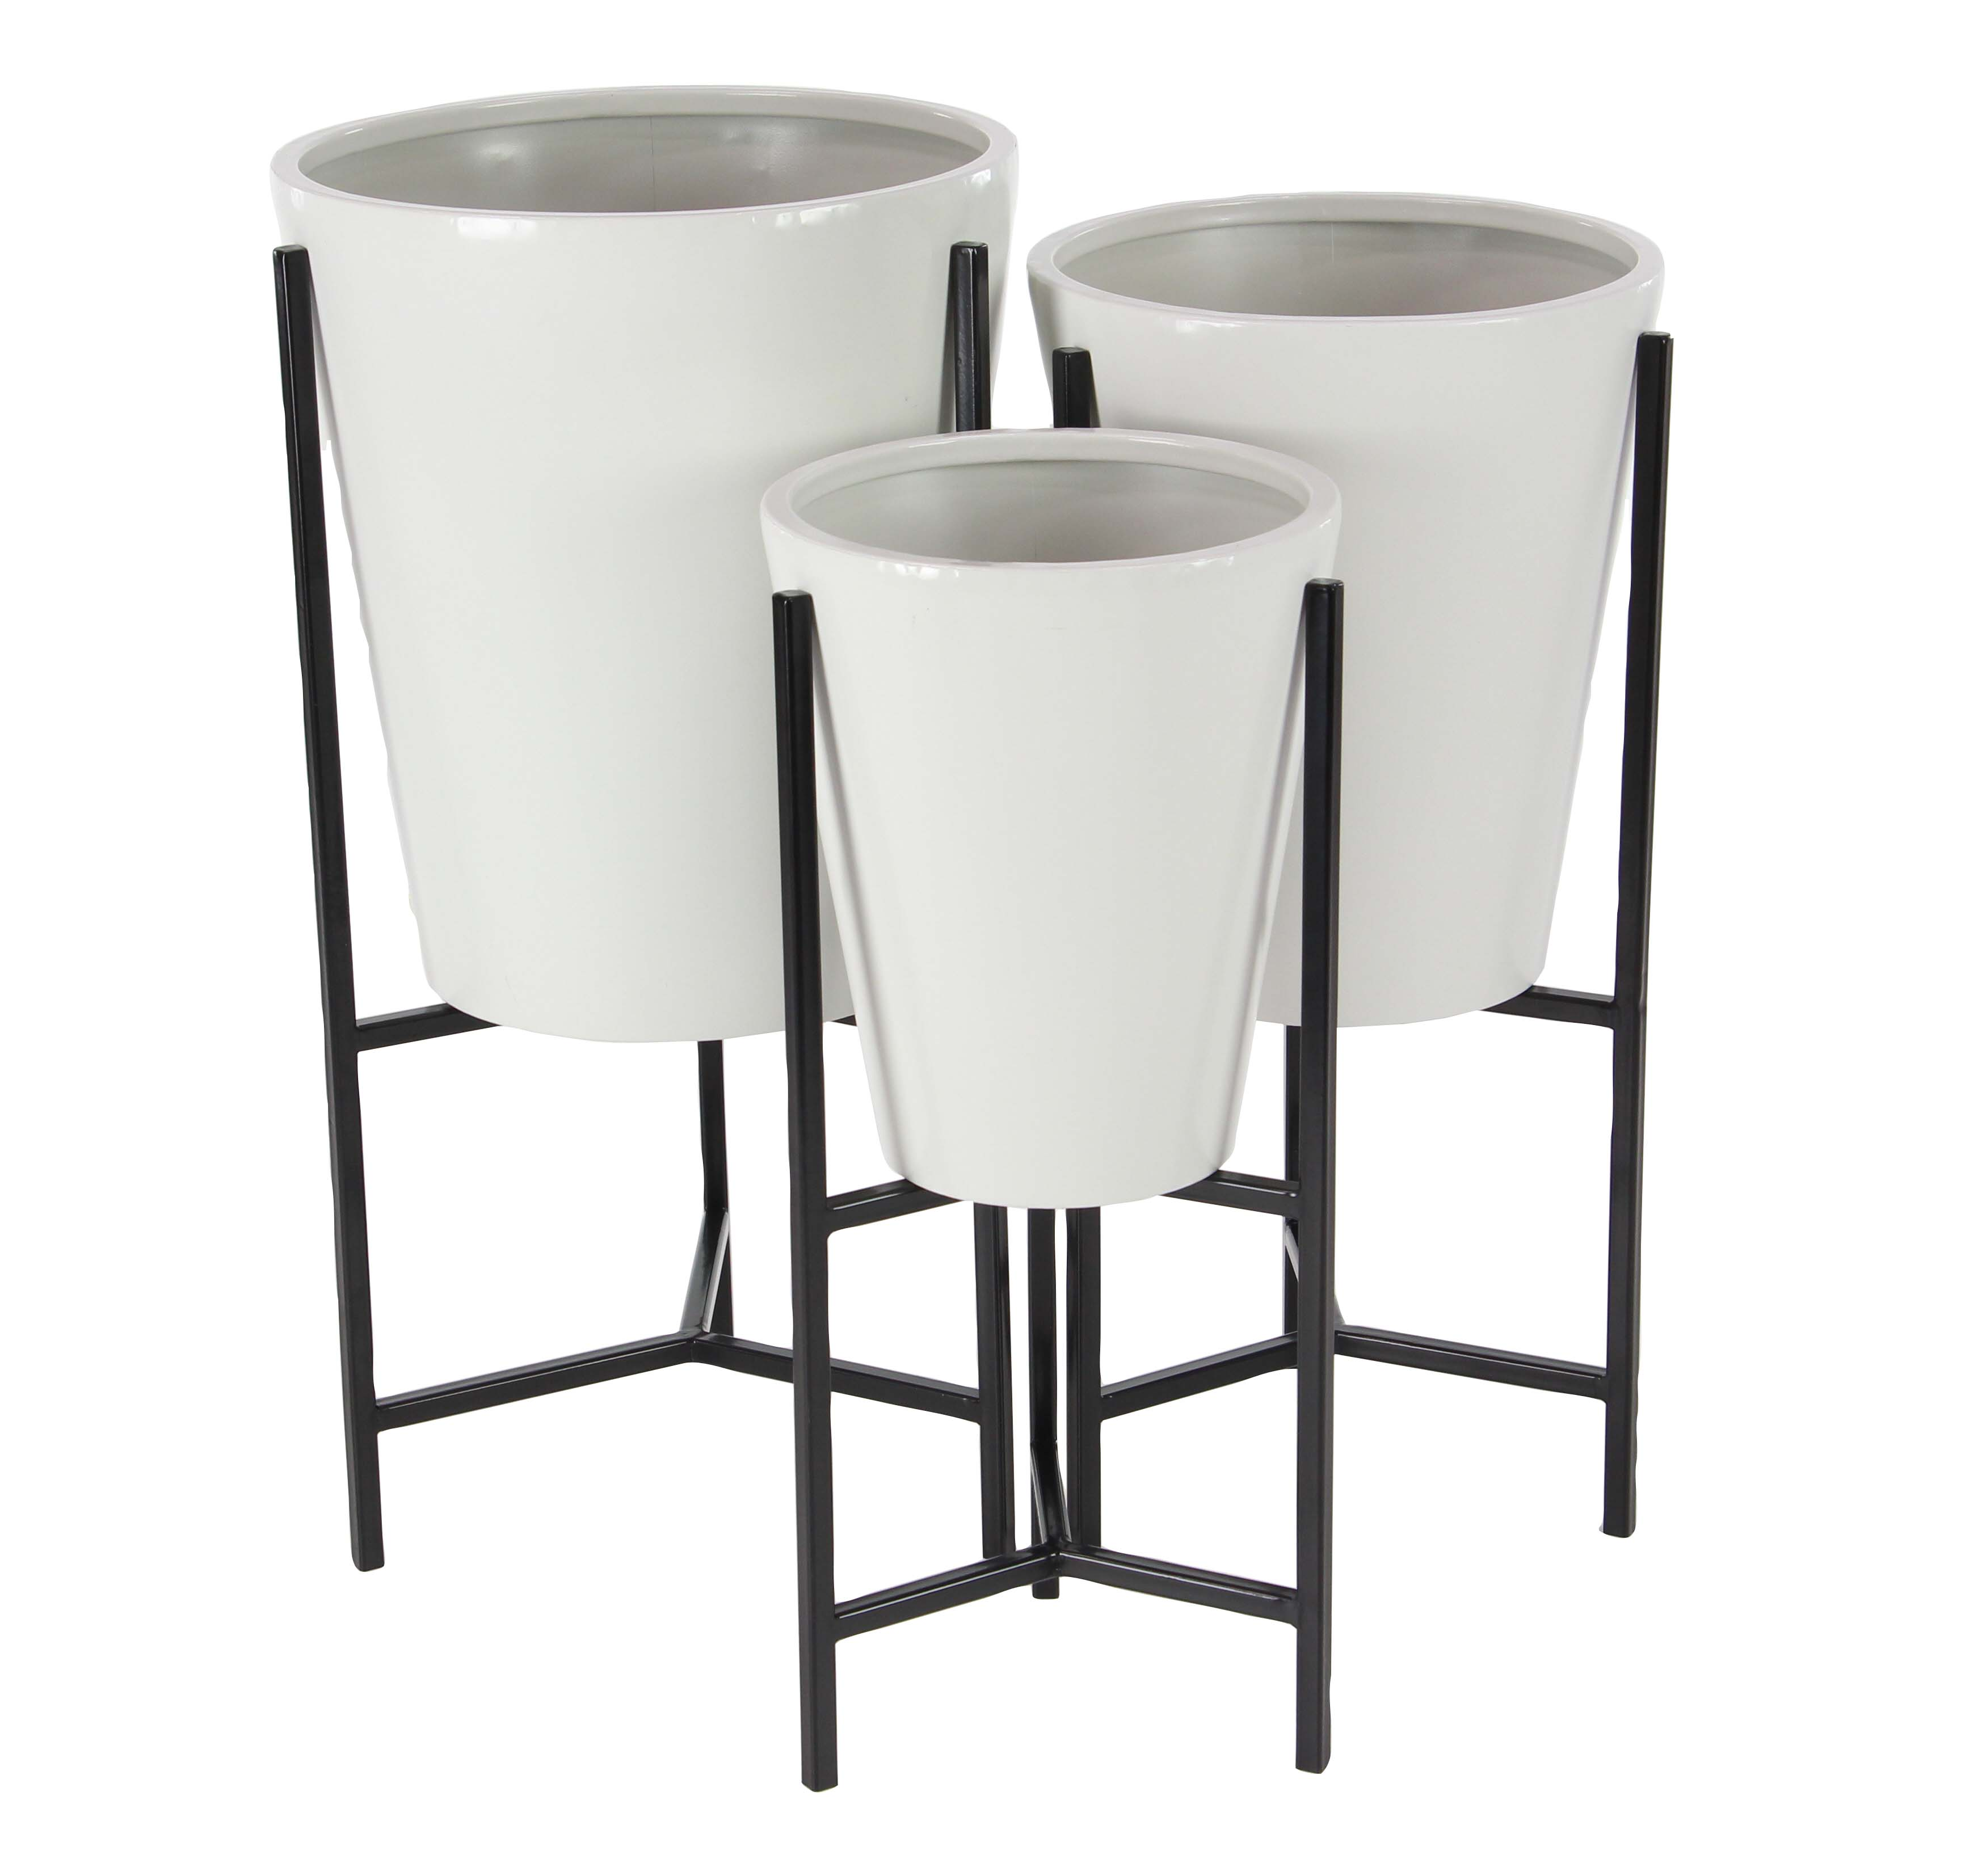 Decmode Set of 3 Modern Iron Conical White and Black Planters With Stand, White